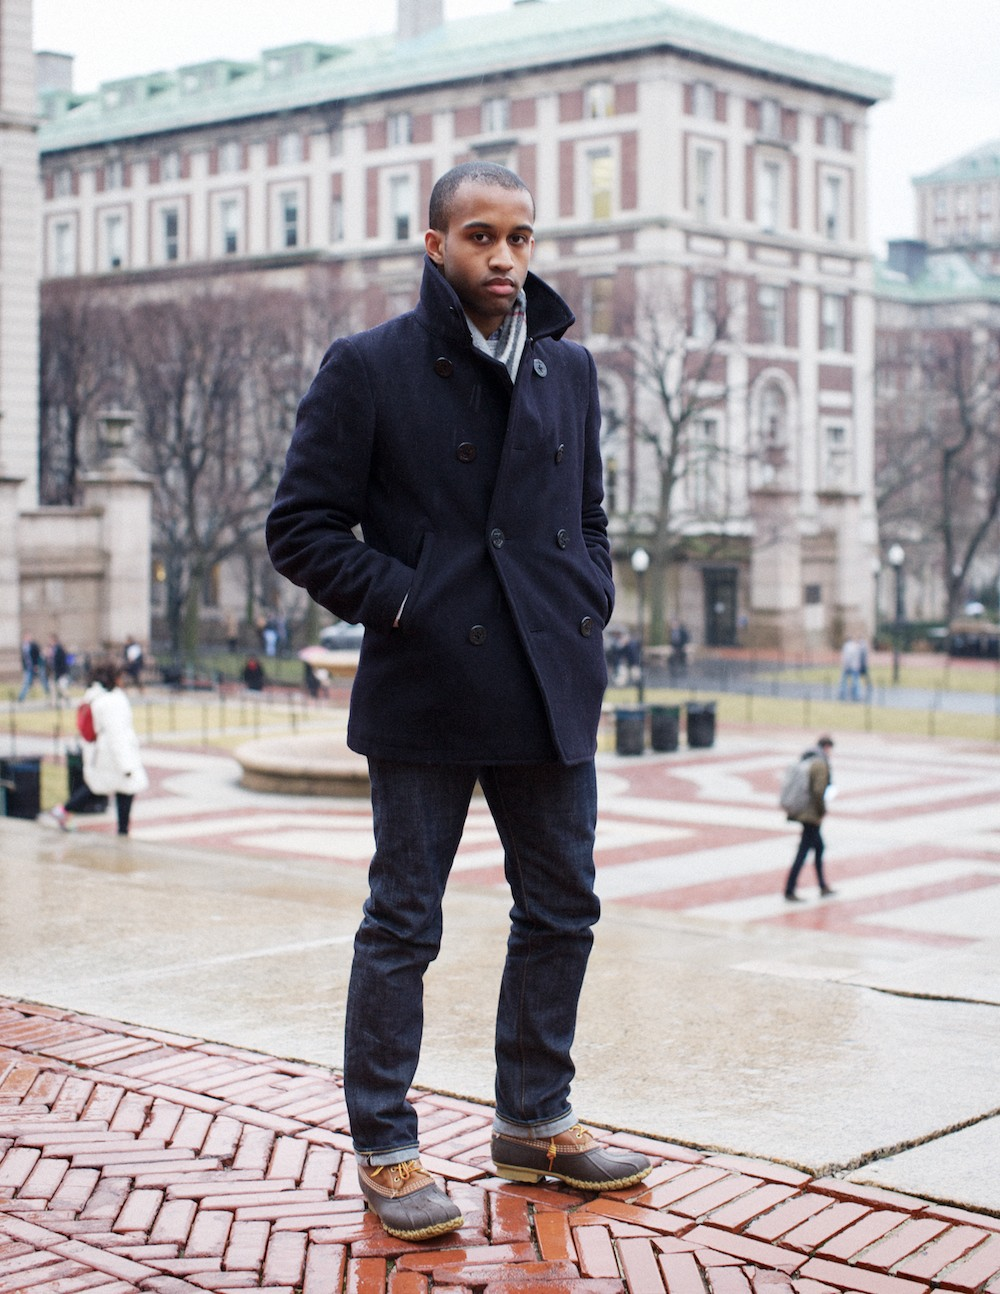 L.L.-Bean-Boots-navy-peacoat-street-streetstyle-fashion-men-blog.jpg